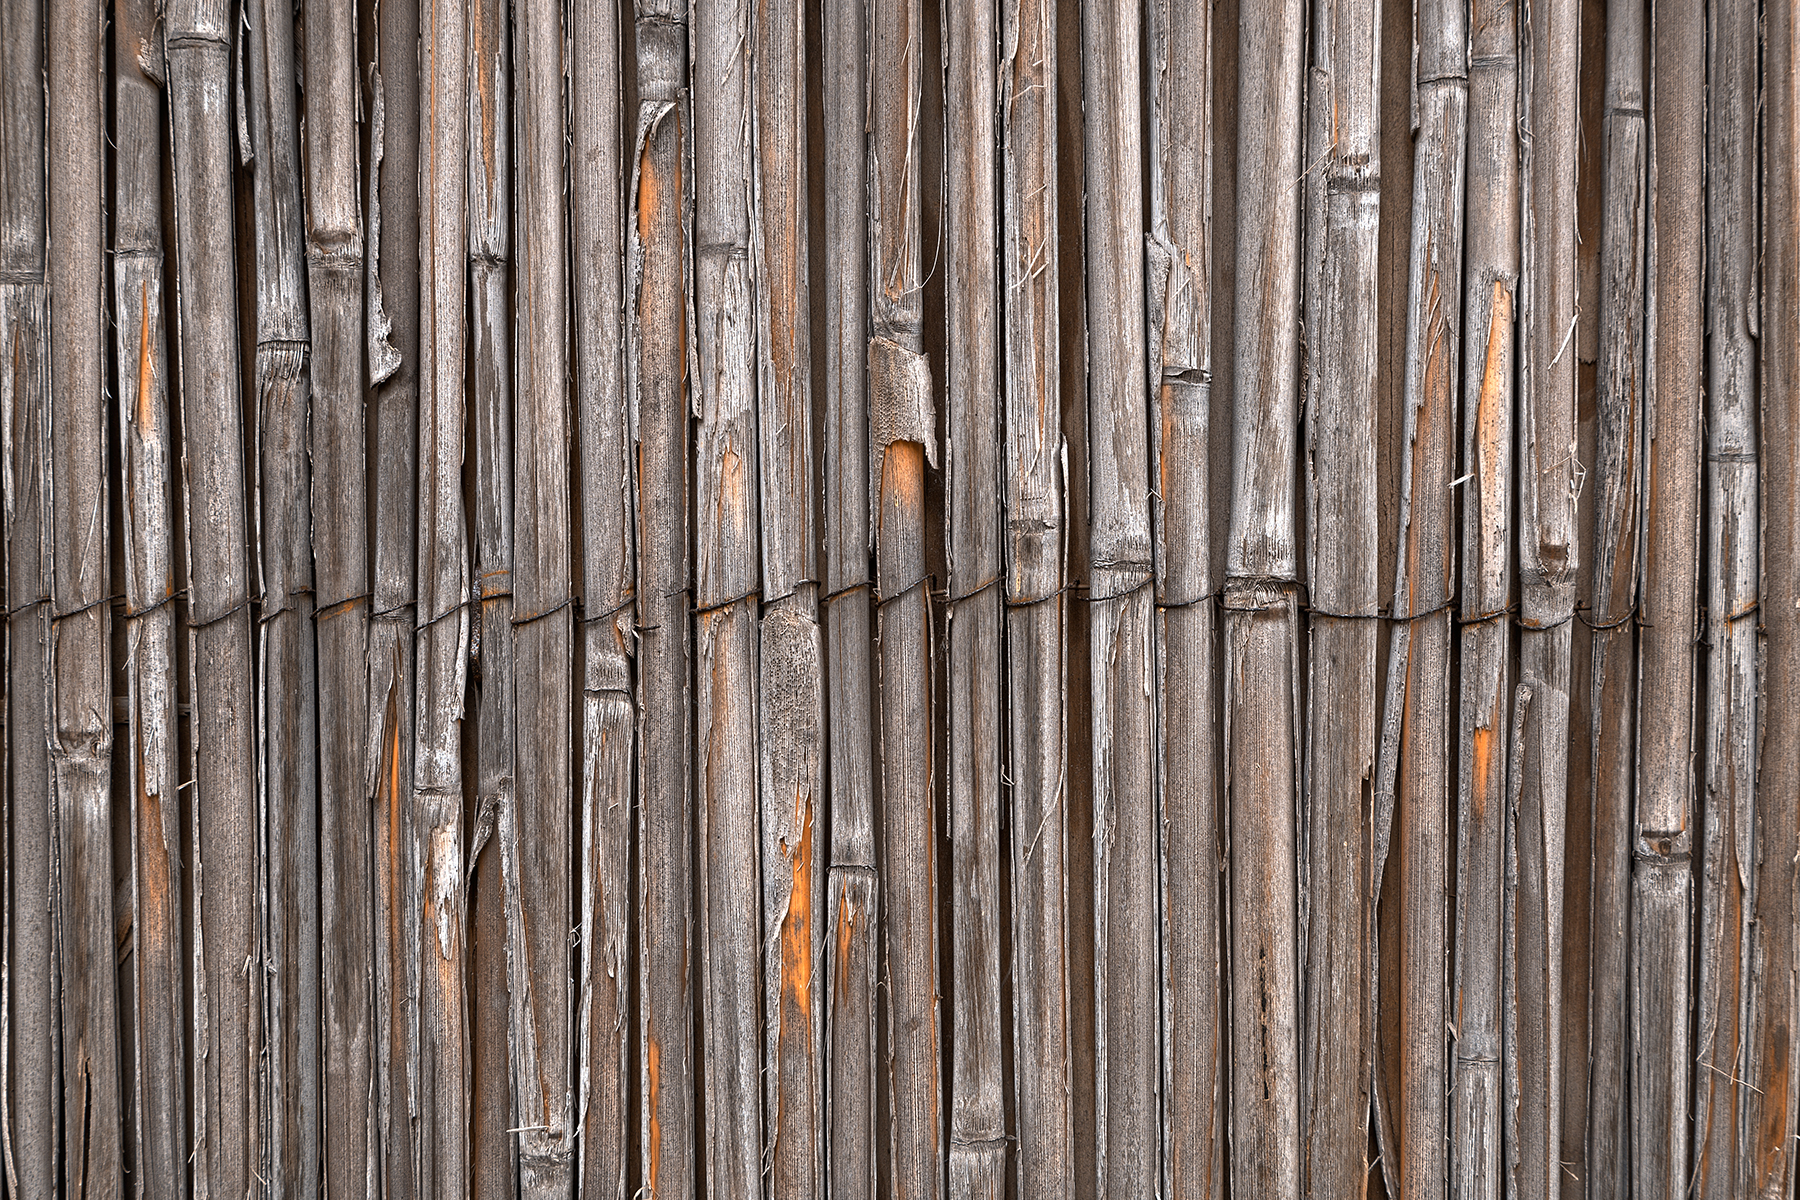 Rustic bamboo wall - hdr texture photo